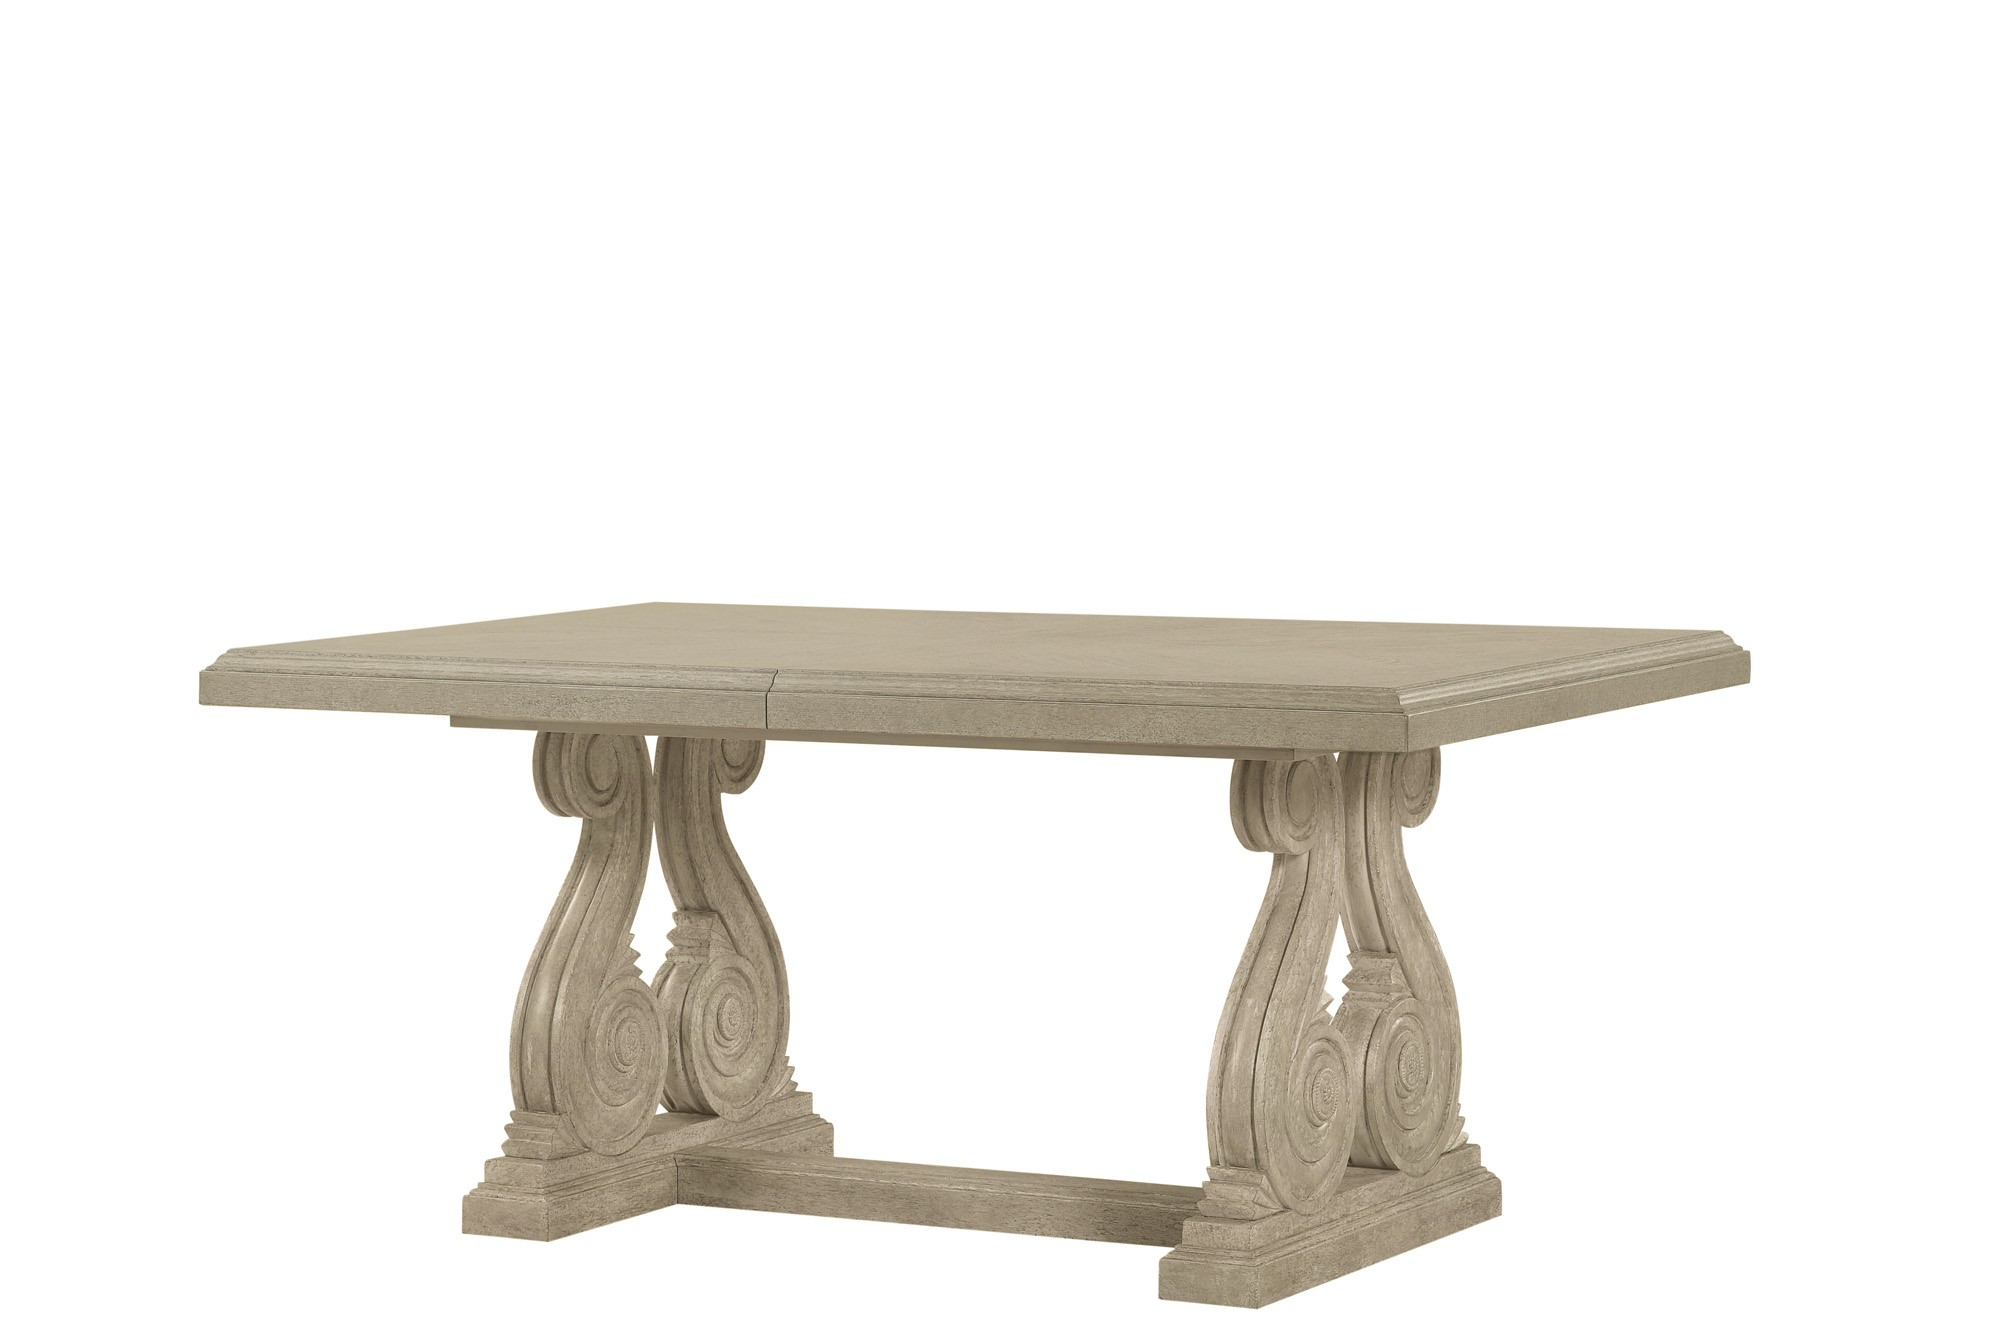 Rectangular Dining Tables with regard to 2019 Arch Salvage Rectangular Dining Table